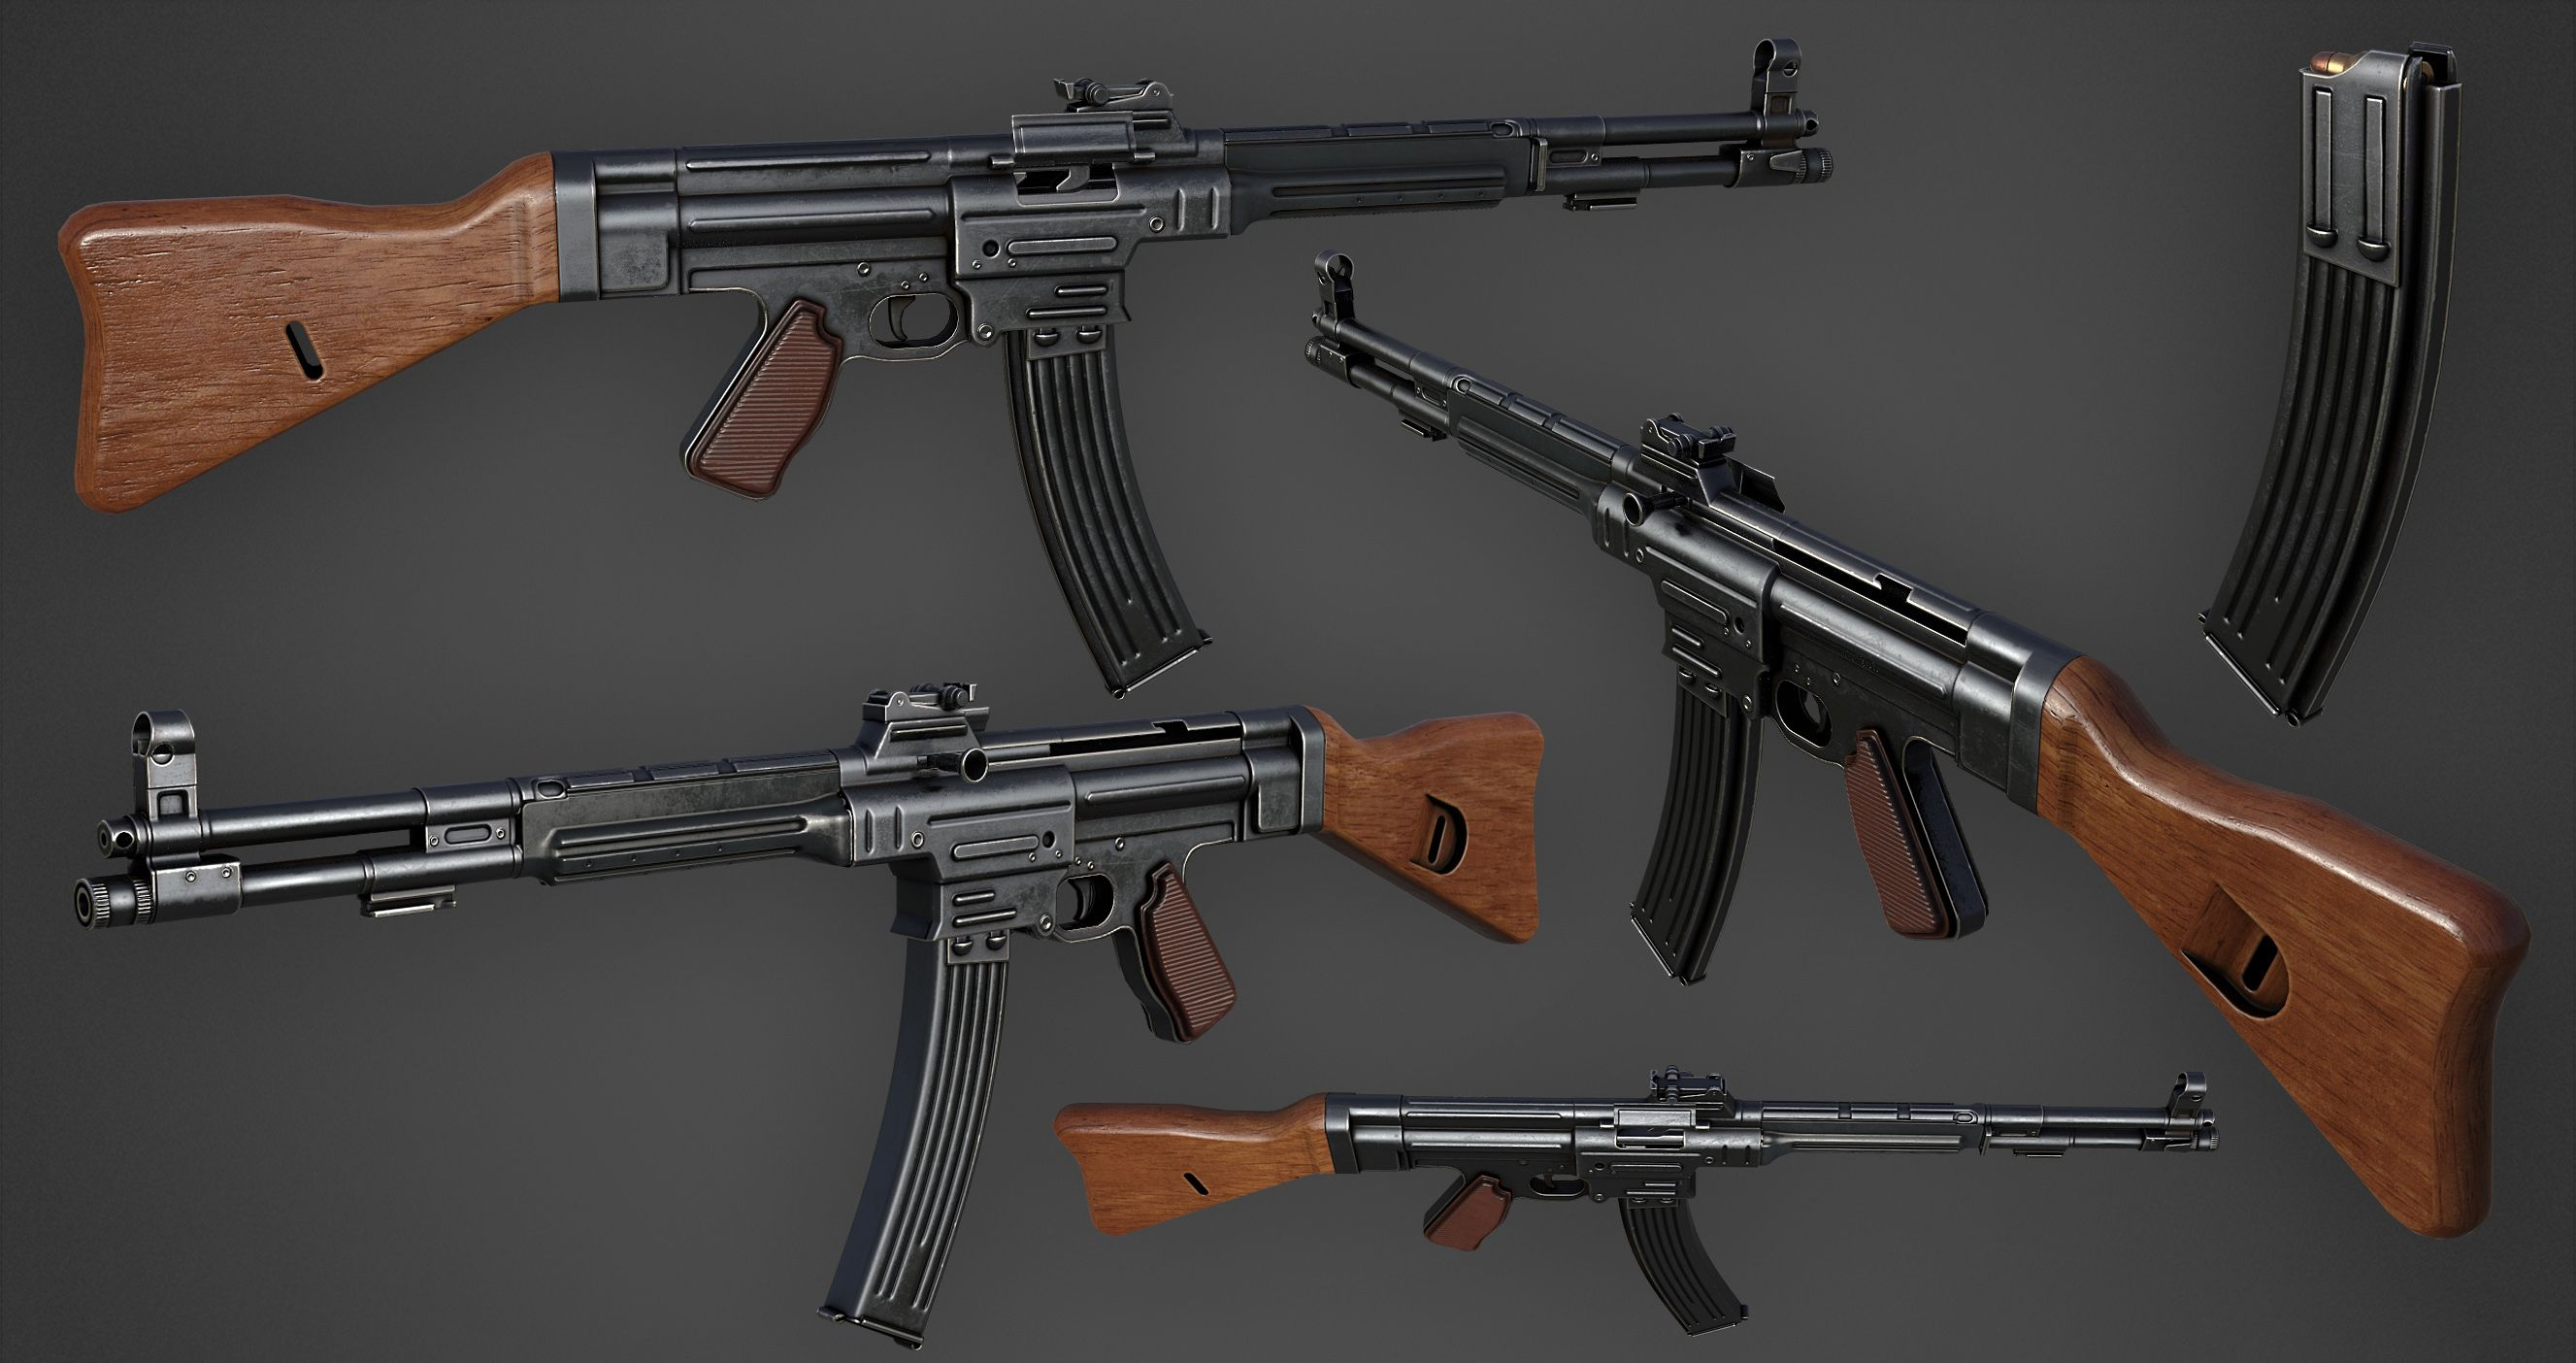 Pin On Small Arms Concepts